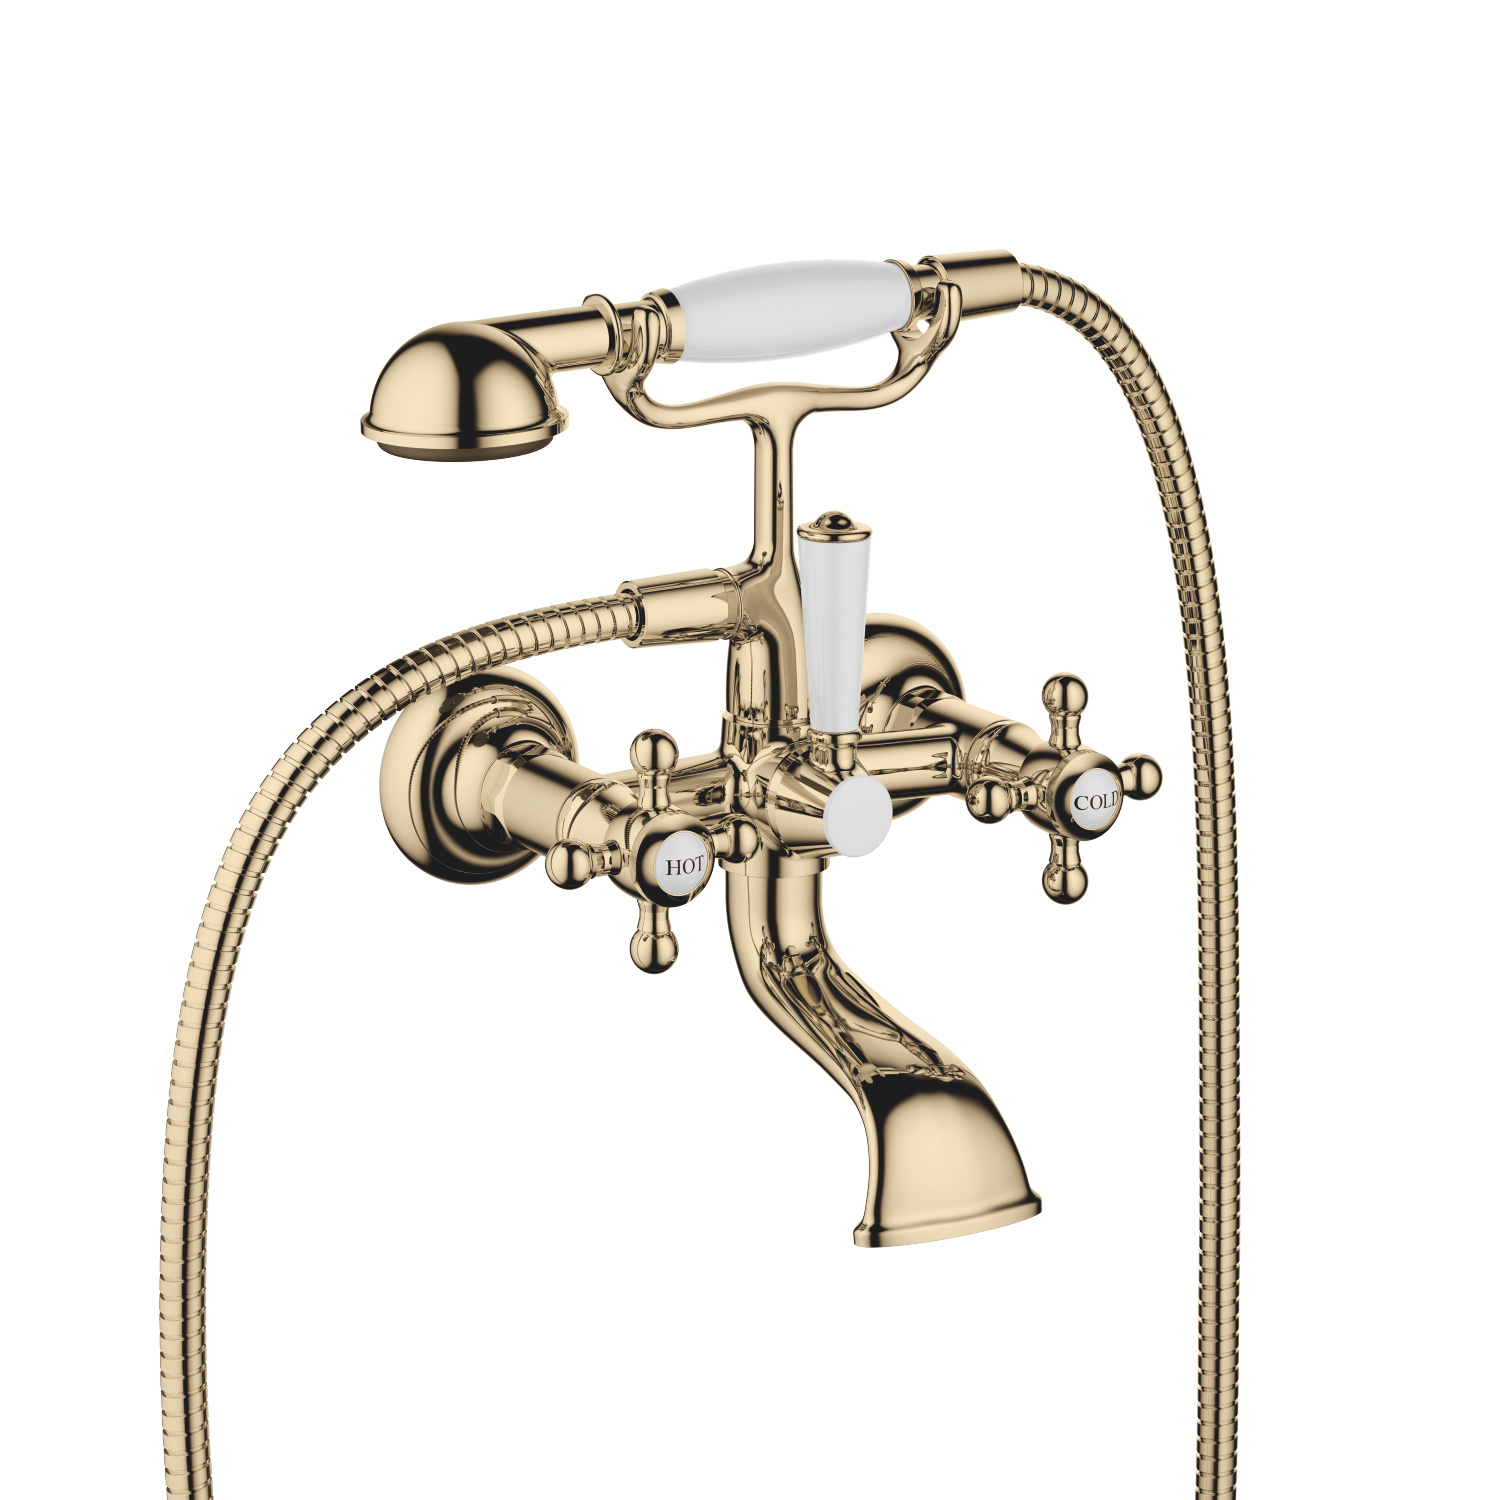 Bath mixer for wall mounting with hand shower set - Durabrass